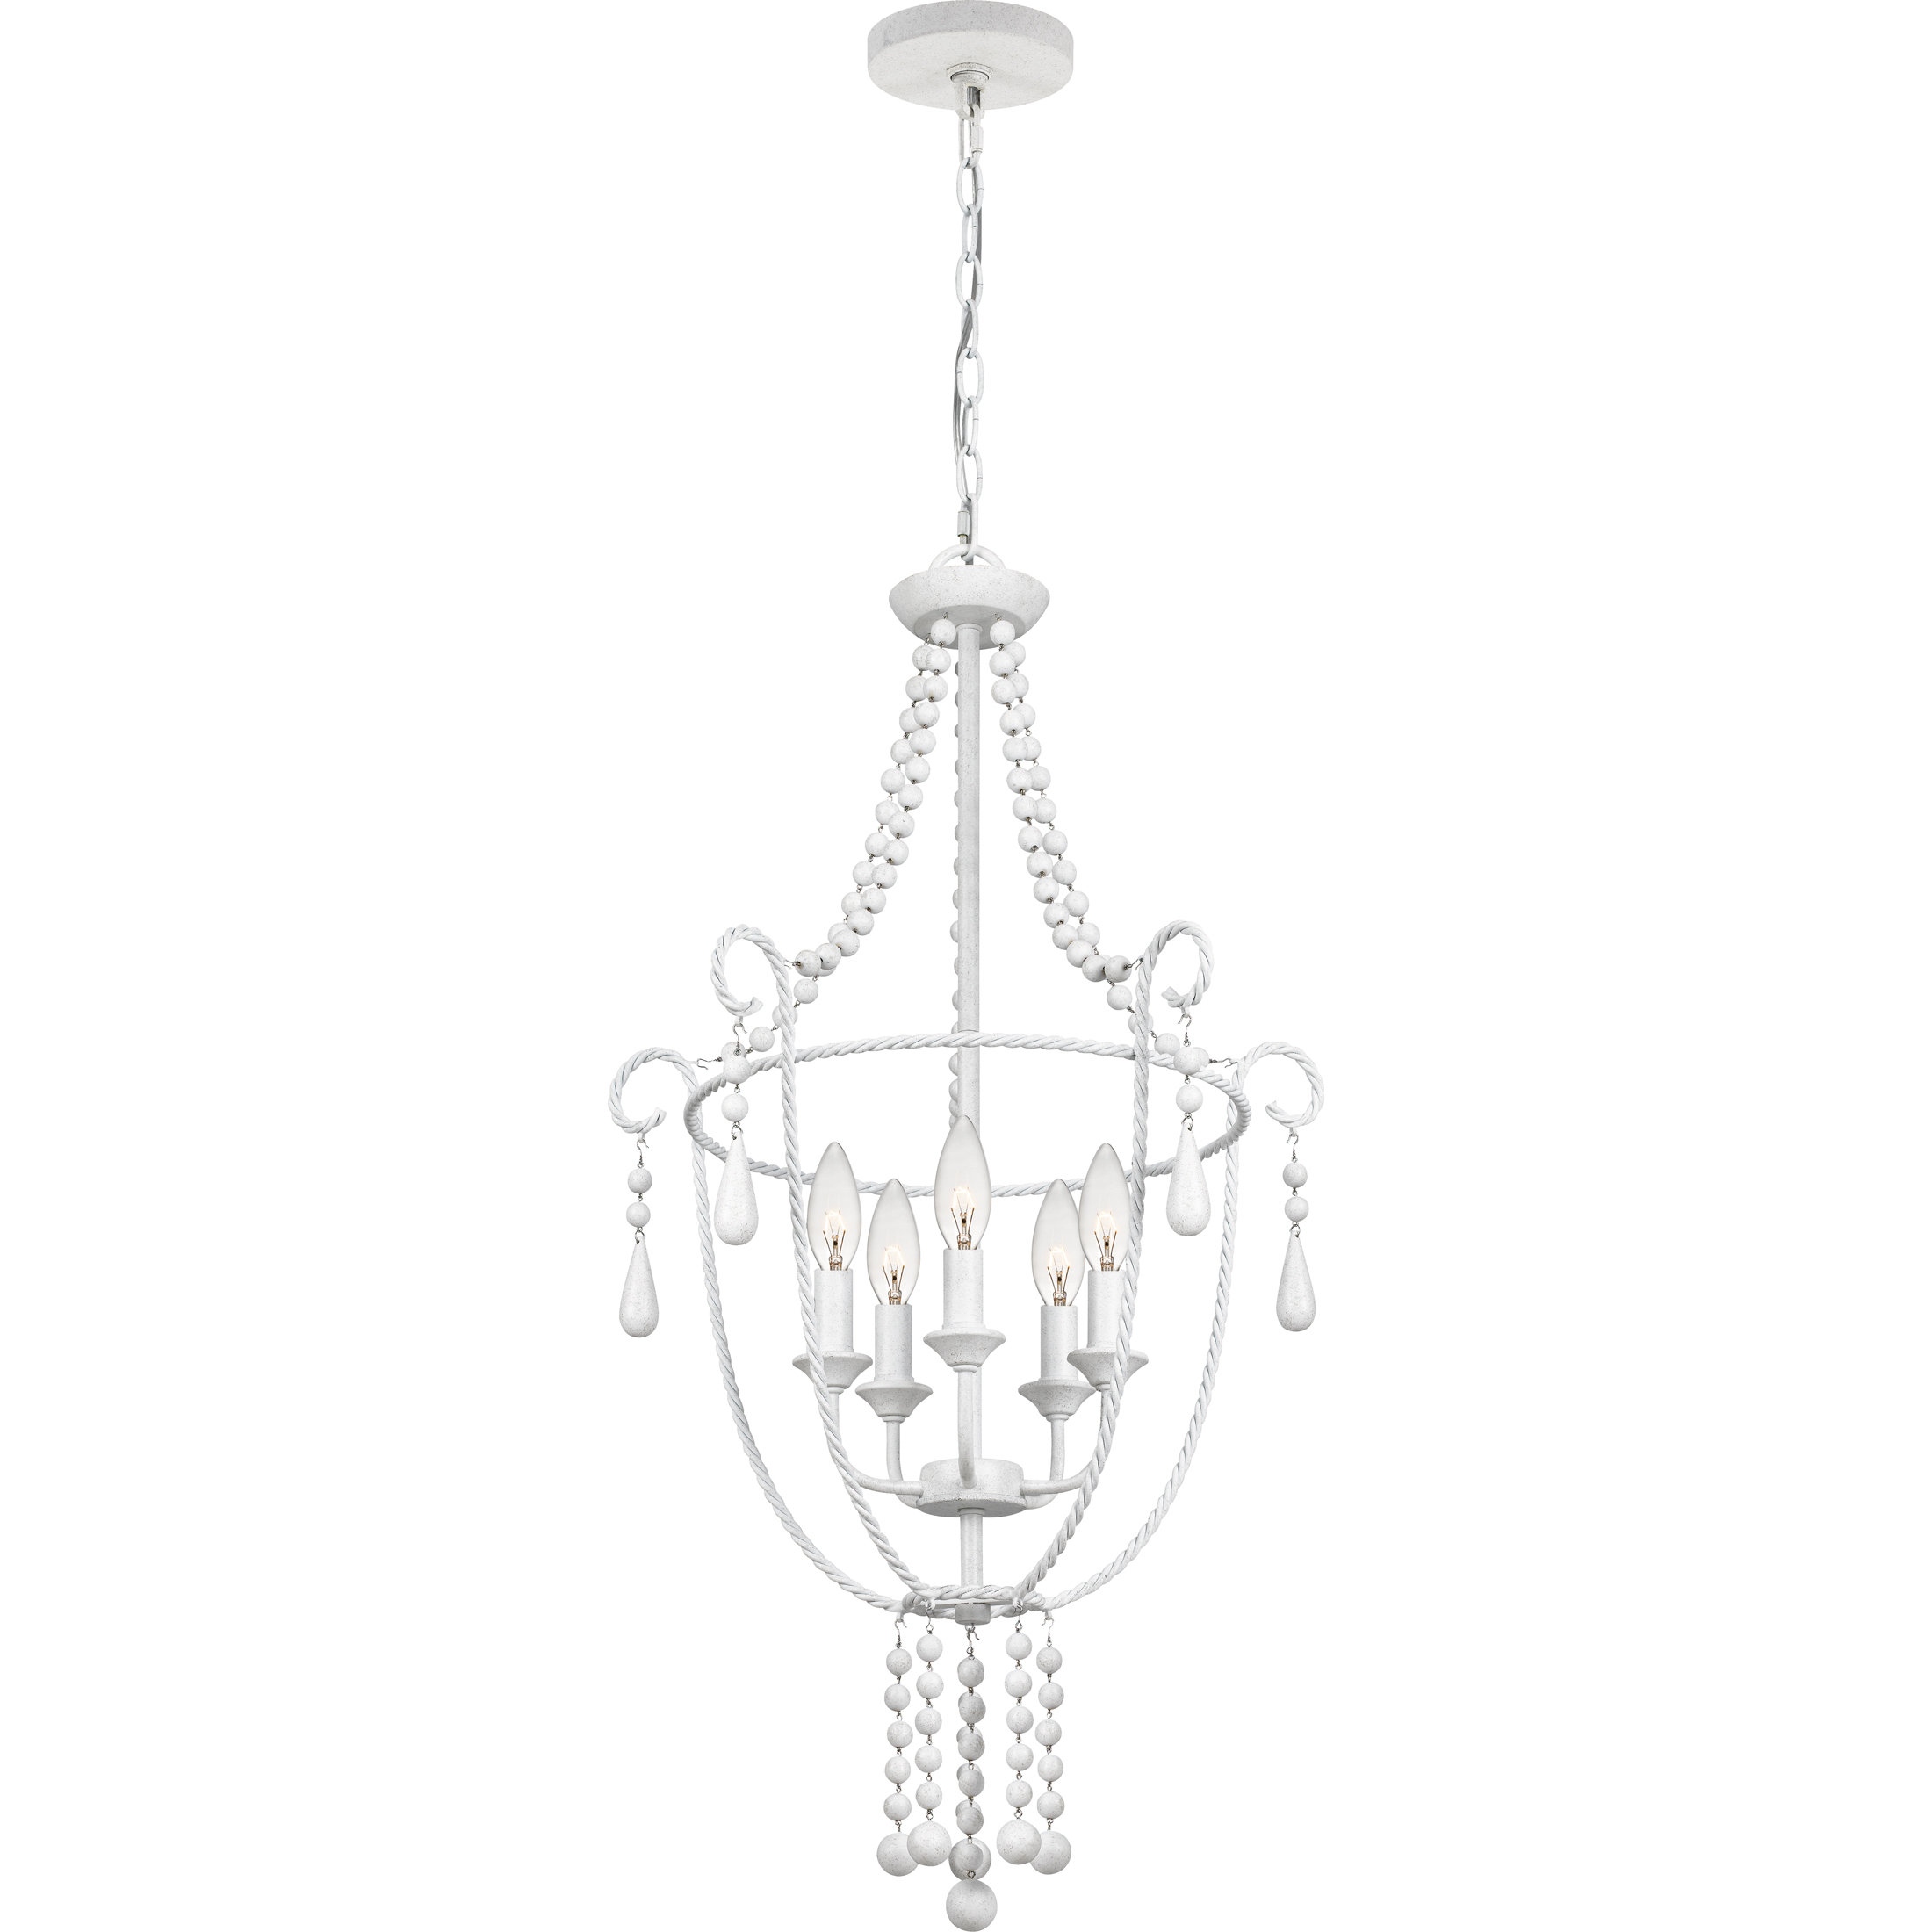 Widely Used Statham 5 Light Candle Style Chandelier With Regard To Florentina 5 Light Candle Style Chandeliers (View 18 of 20)